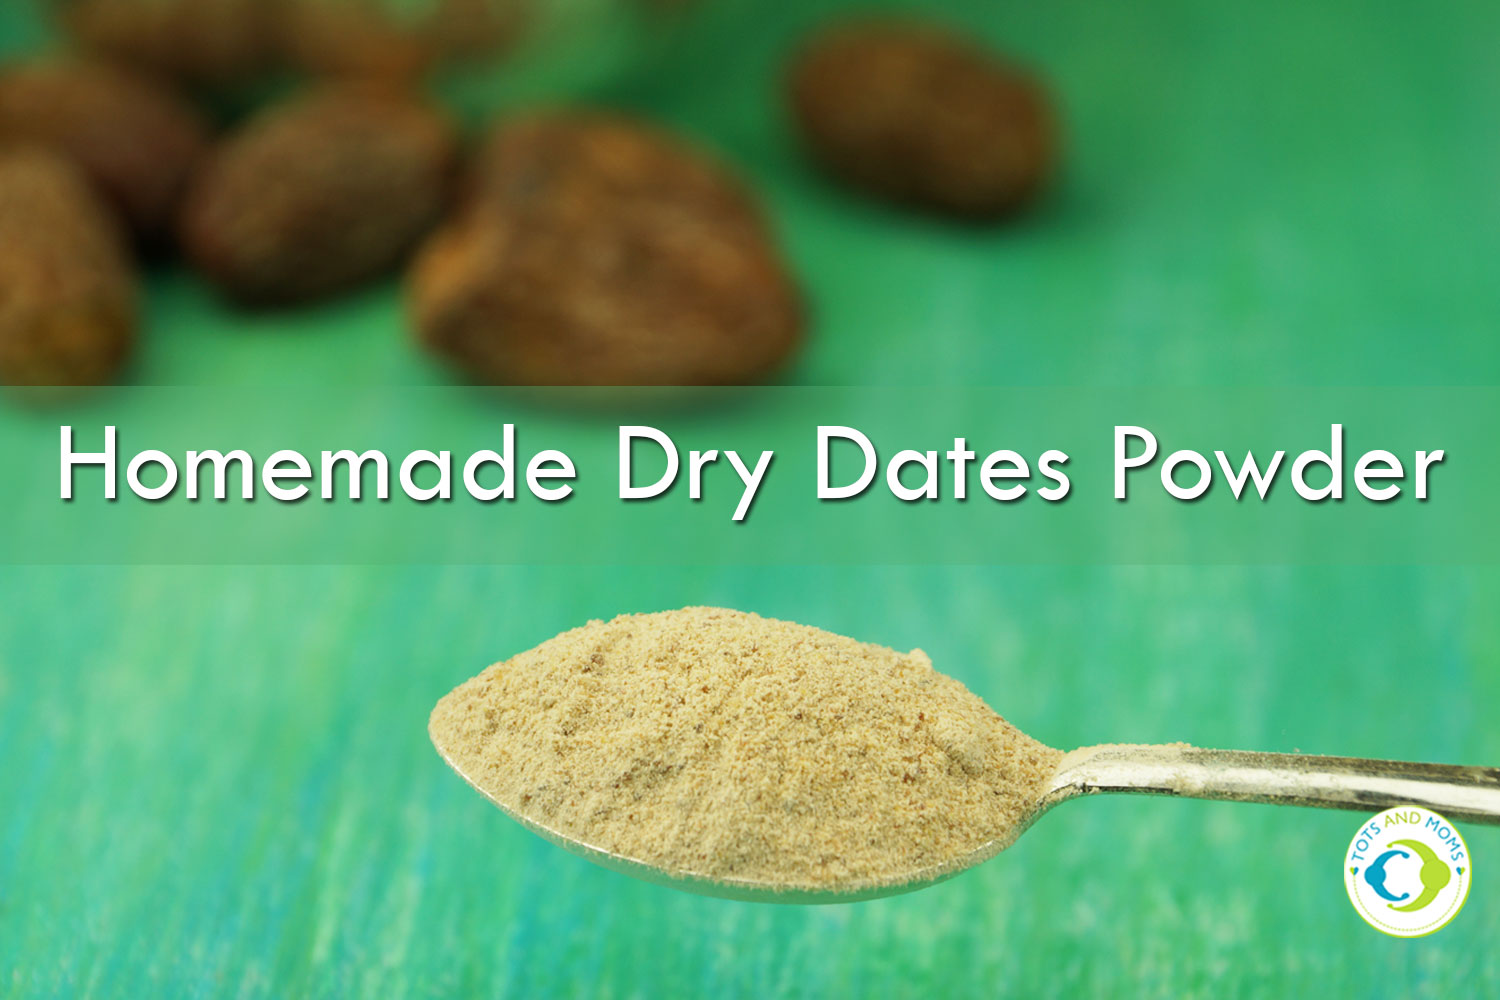 HOMEMADE DRY DATES POWDER for Toddlers, Kids & Family How to make dry dates powder at home easily